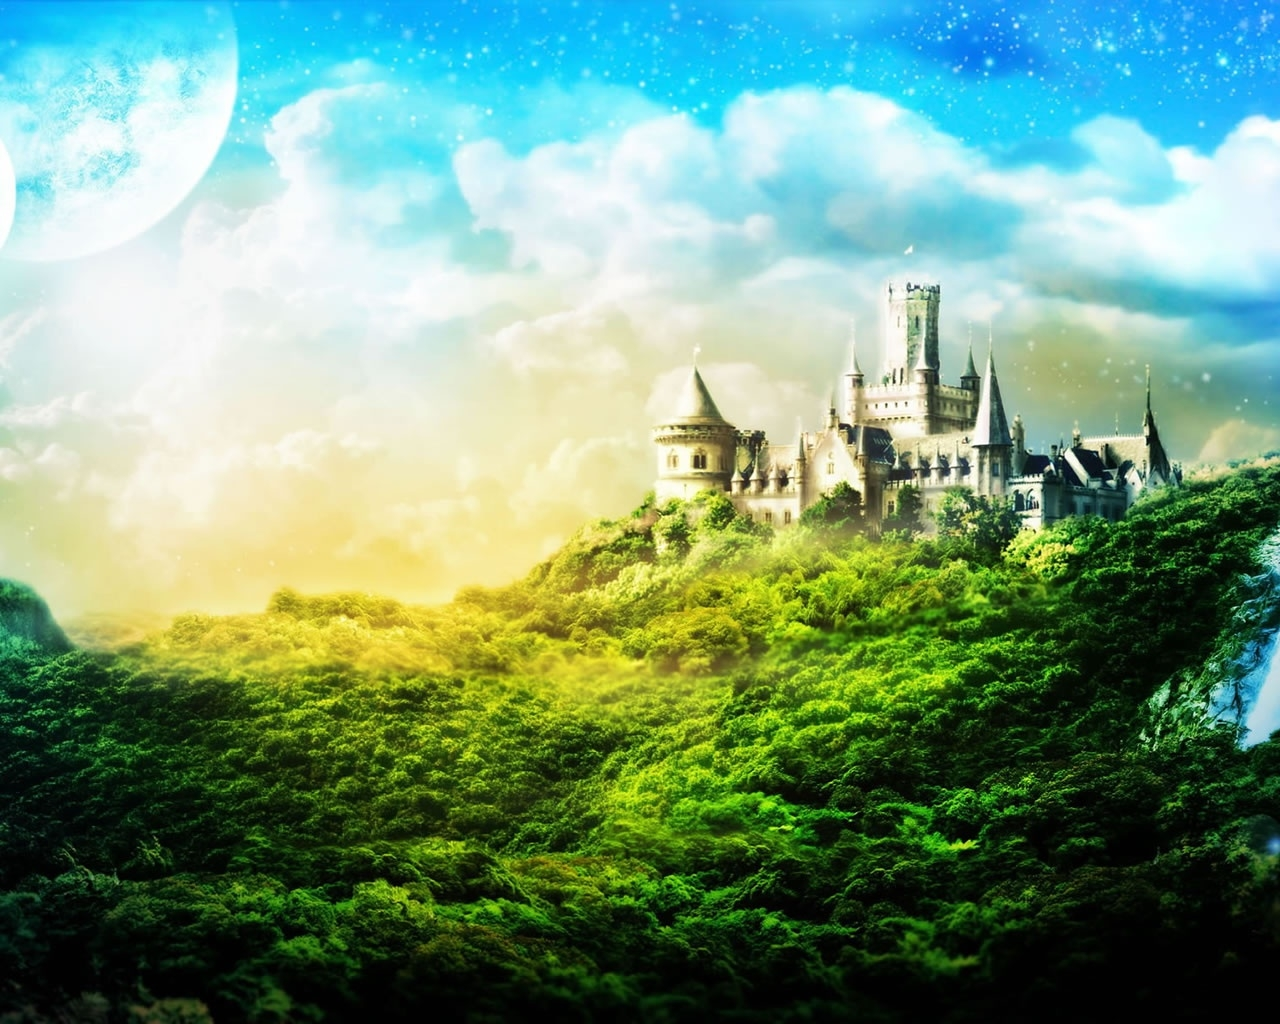 sky kingdom images sky kingdom hd wallpaper and background photos